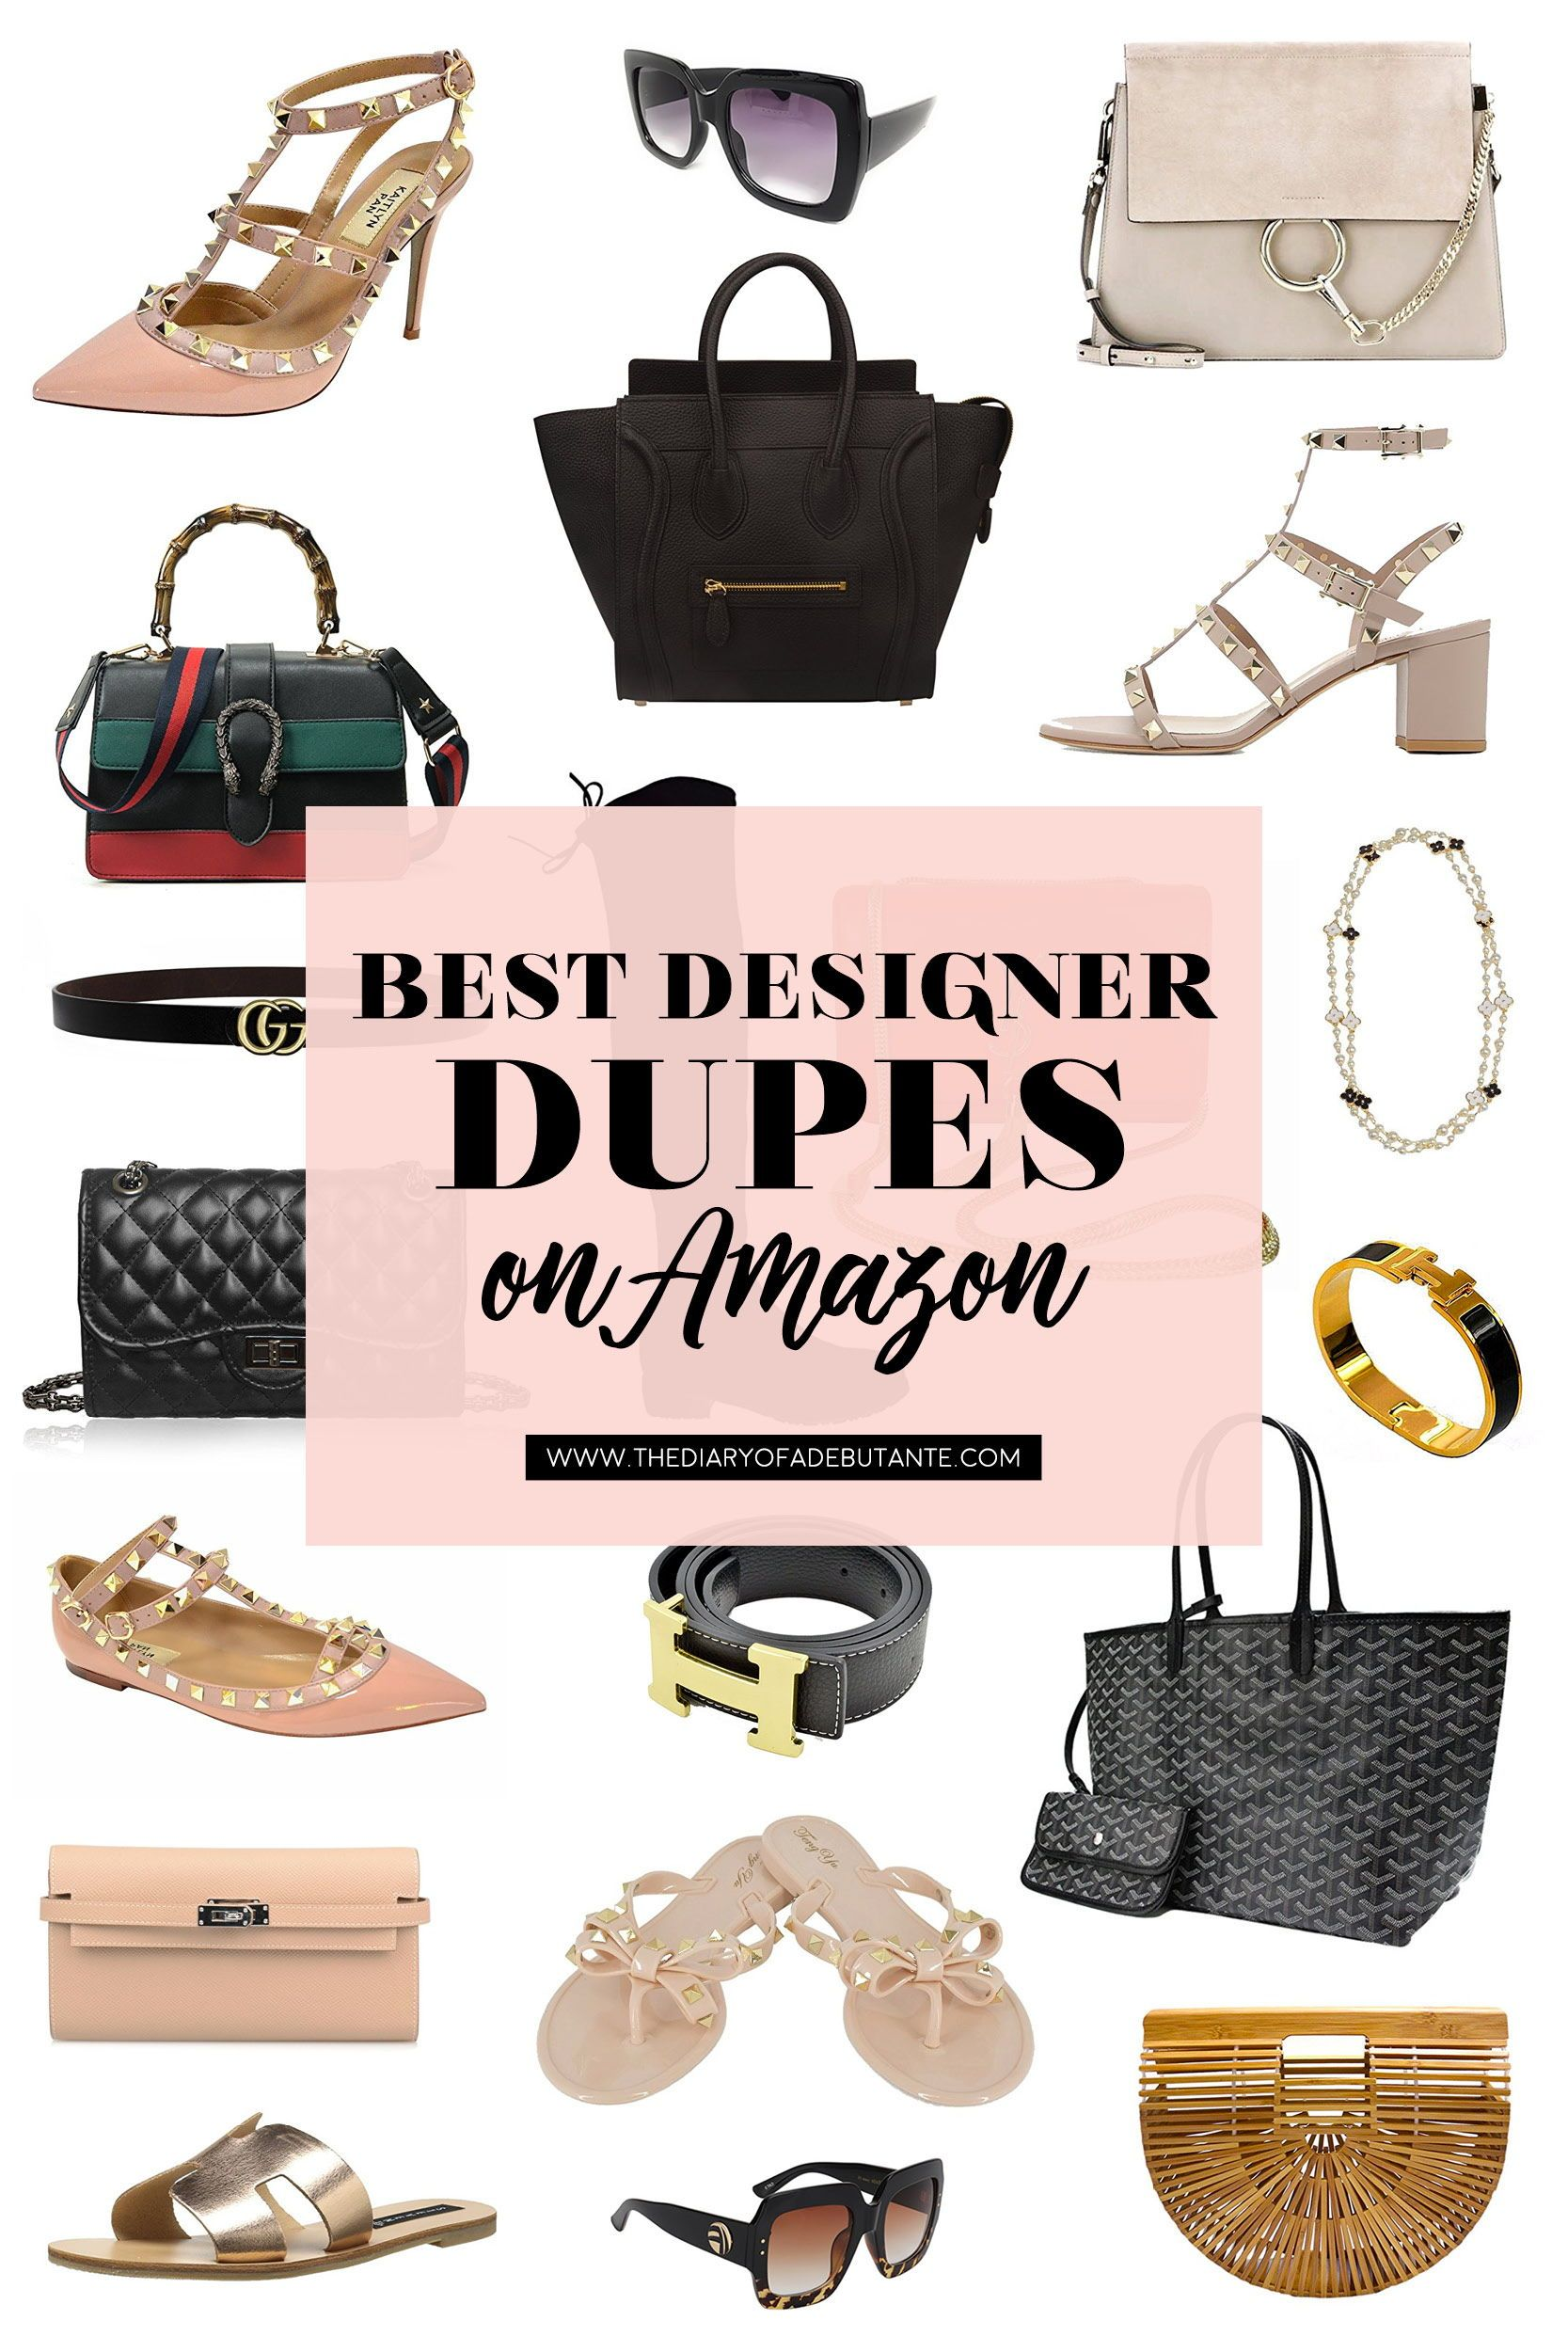 73fd8160f3 All of the best designer dupes on Amazon rounded up in one place! If you